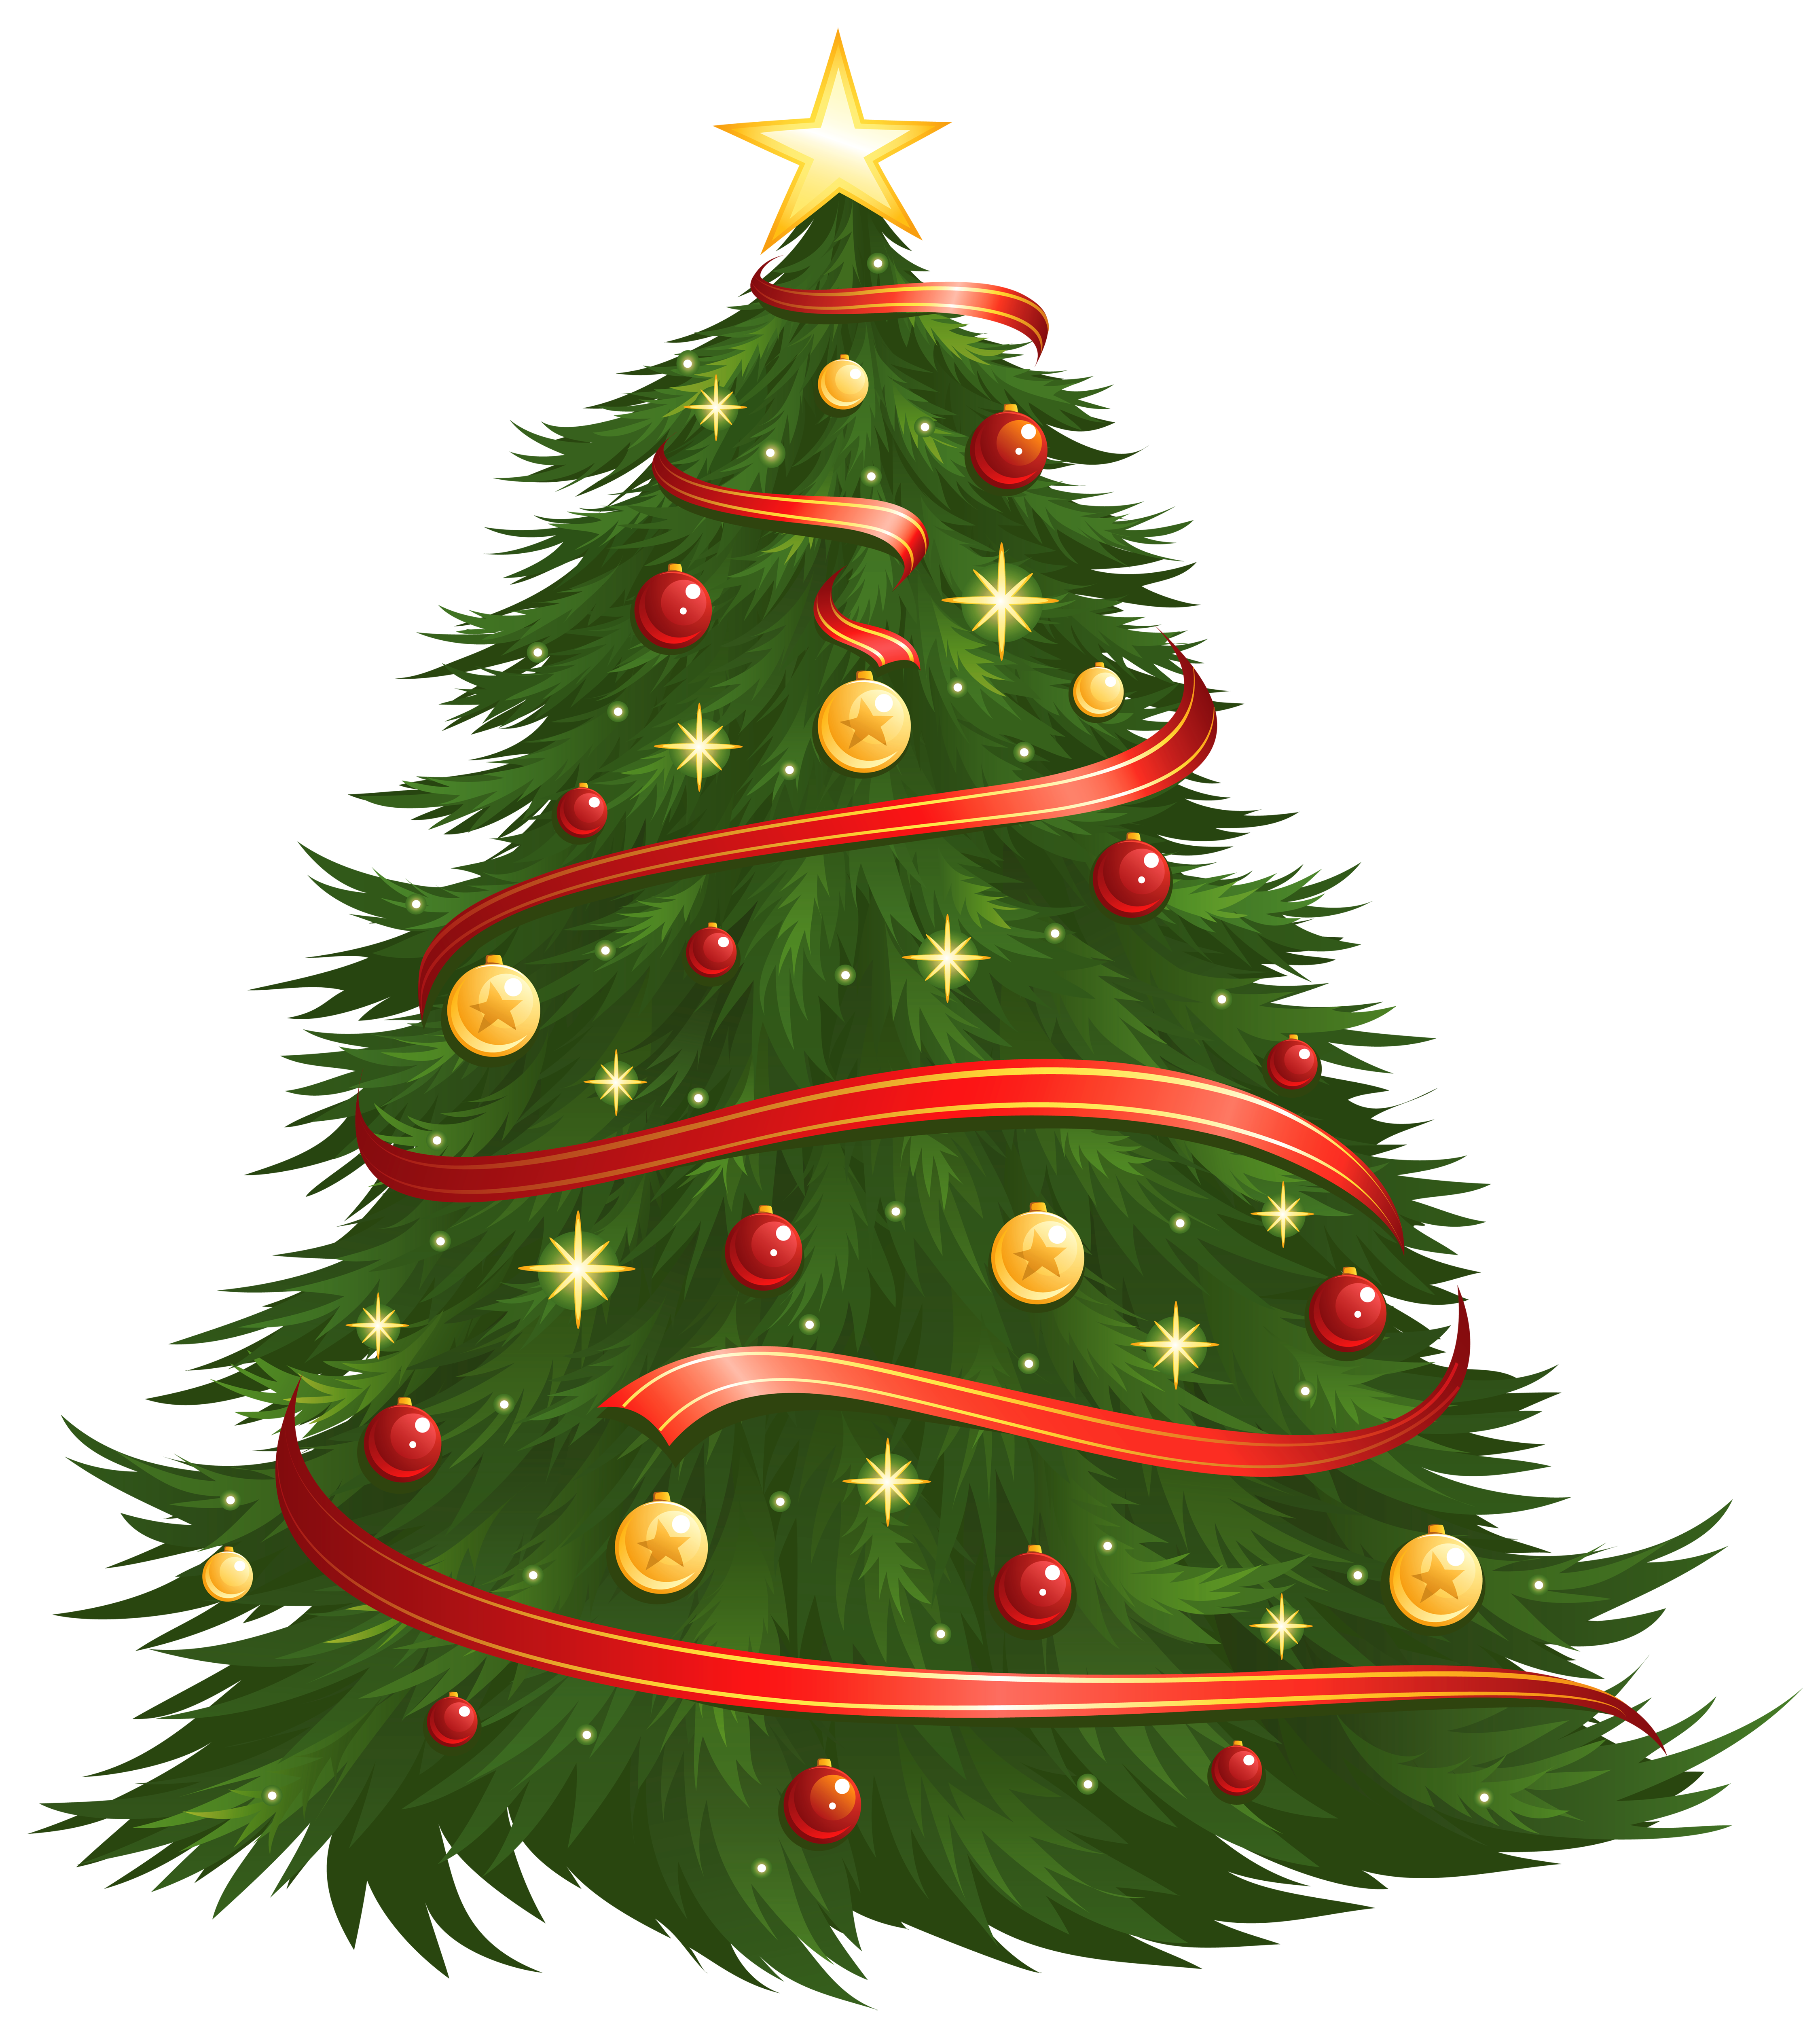 Christmas tree clip art png. Large size transparent decorated